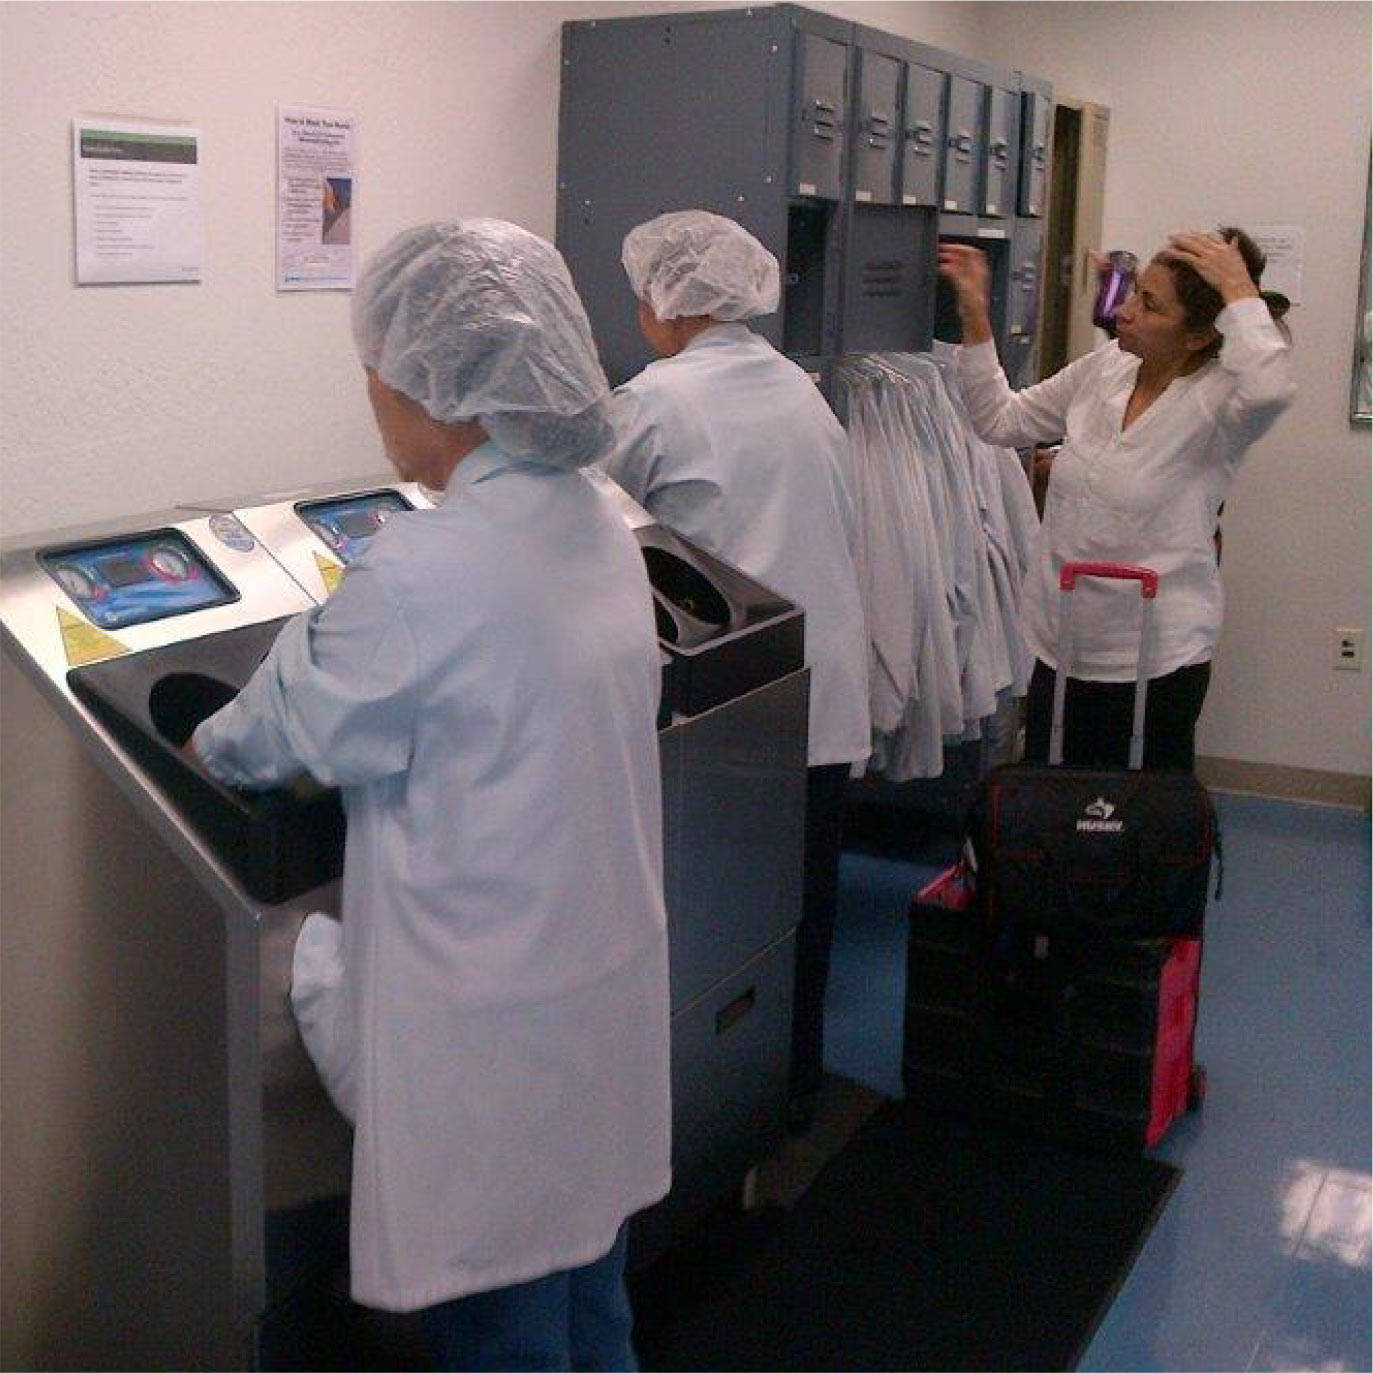 CleanTech Automatic Hand Washing Stations in Use at a CleanRoom